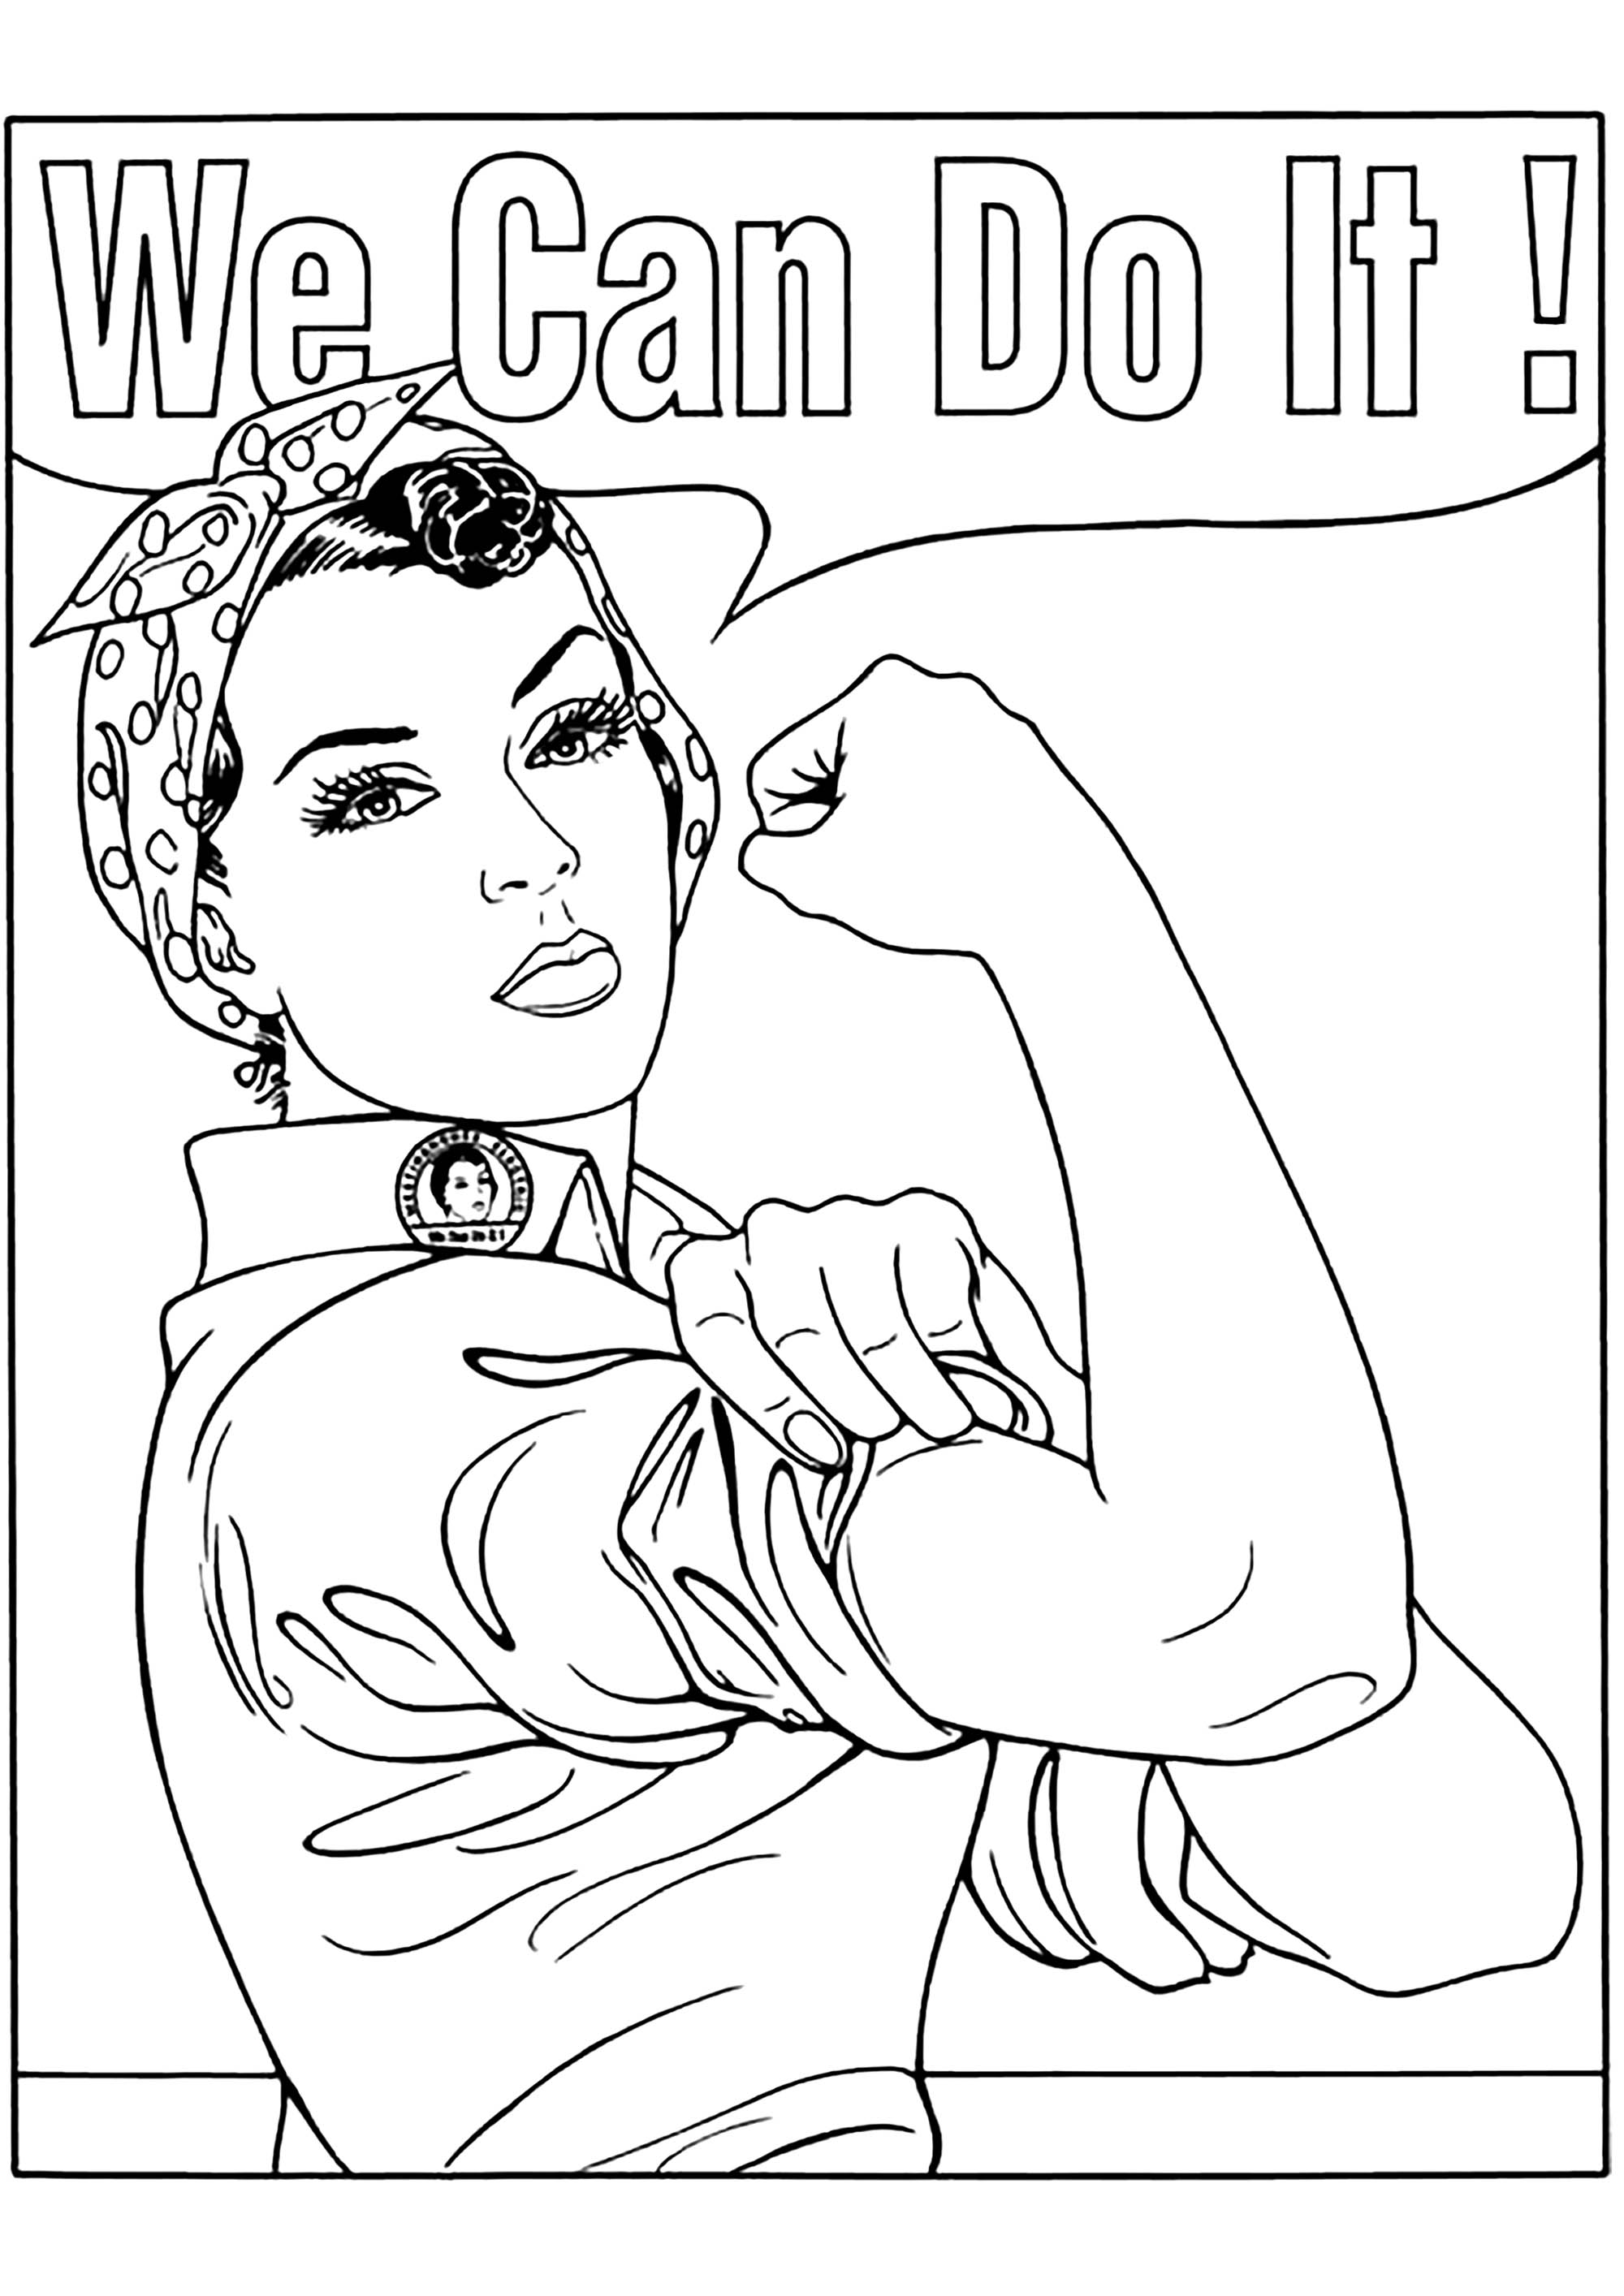 'We Can Do It!' is an American World War II wartime poster produced by J. Howard Miller in 1943. You can now color it